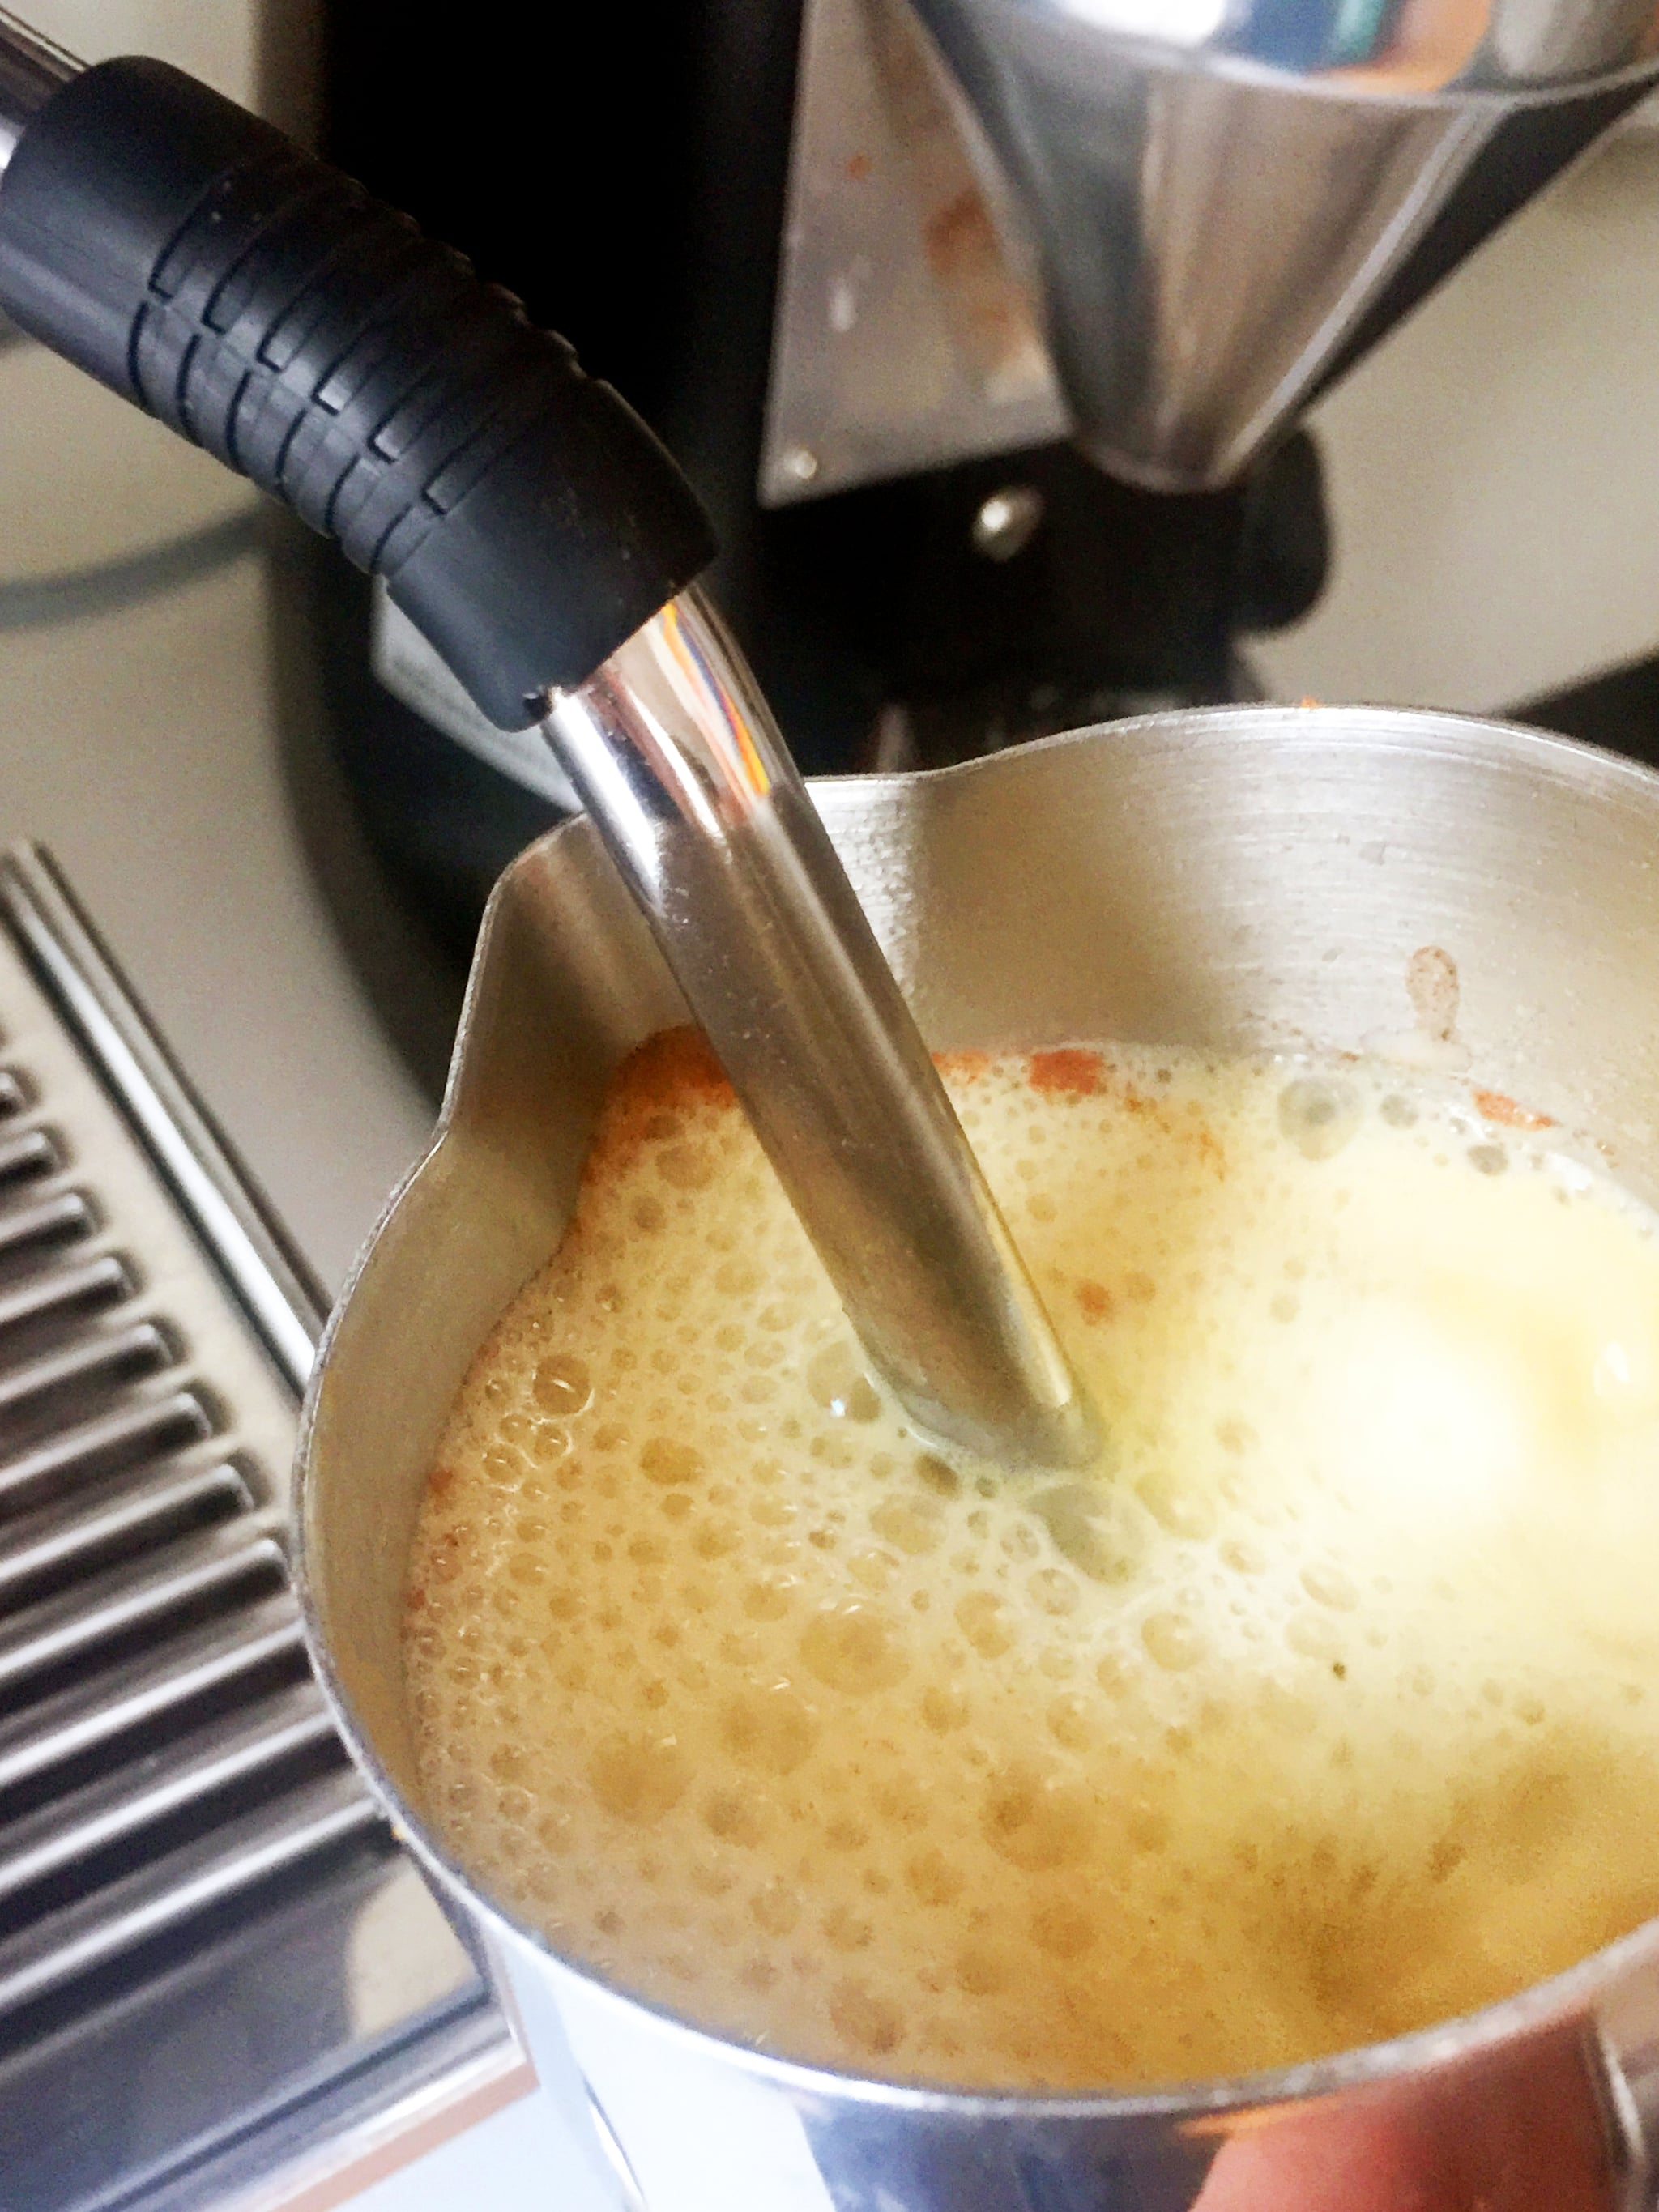 How to Make a Turmeric Latte at Home